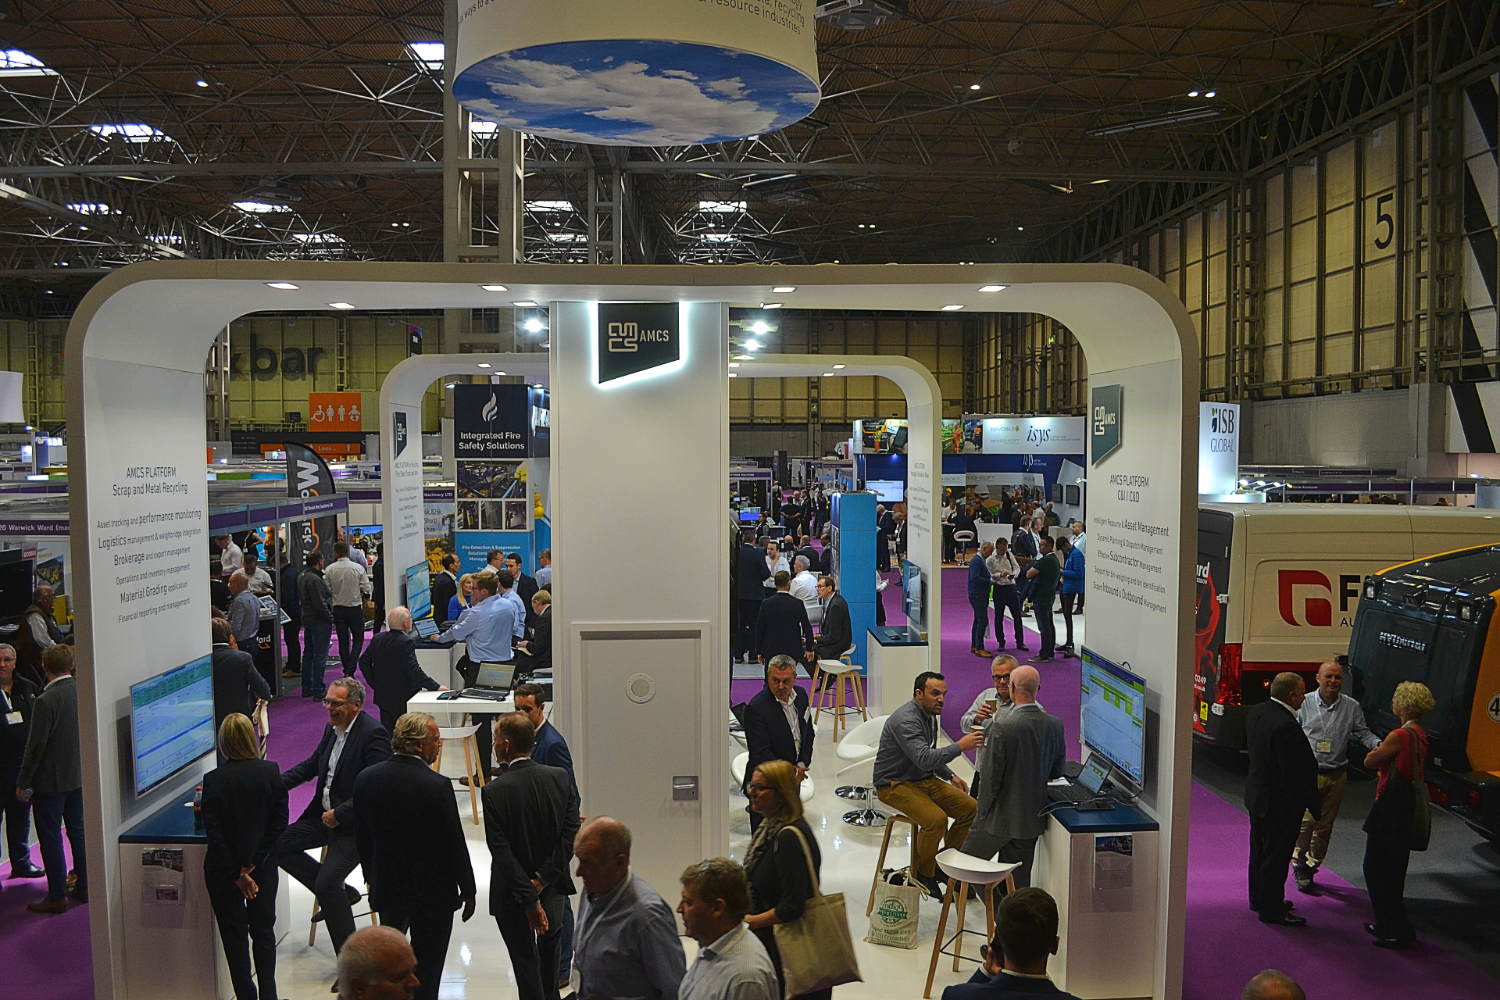 That's show business: RWM 2019